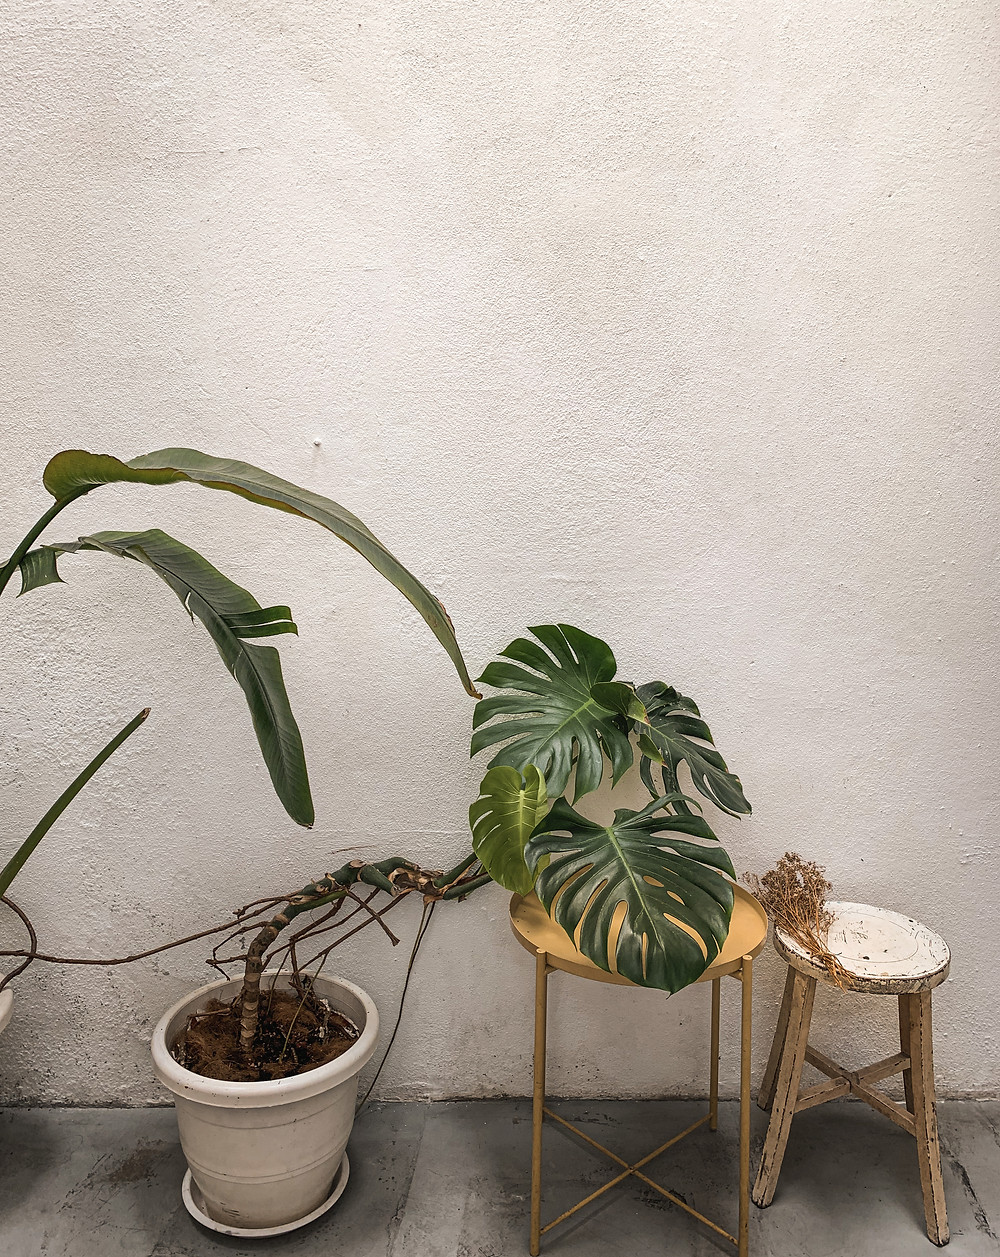 Cosy vibes : plants and wooden stools at Le楽, RollingBear Travels blog.